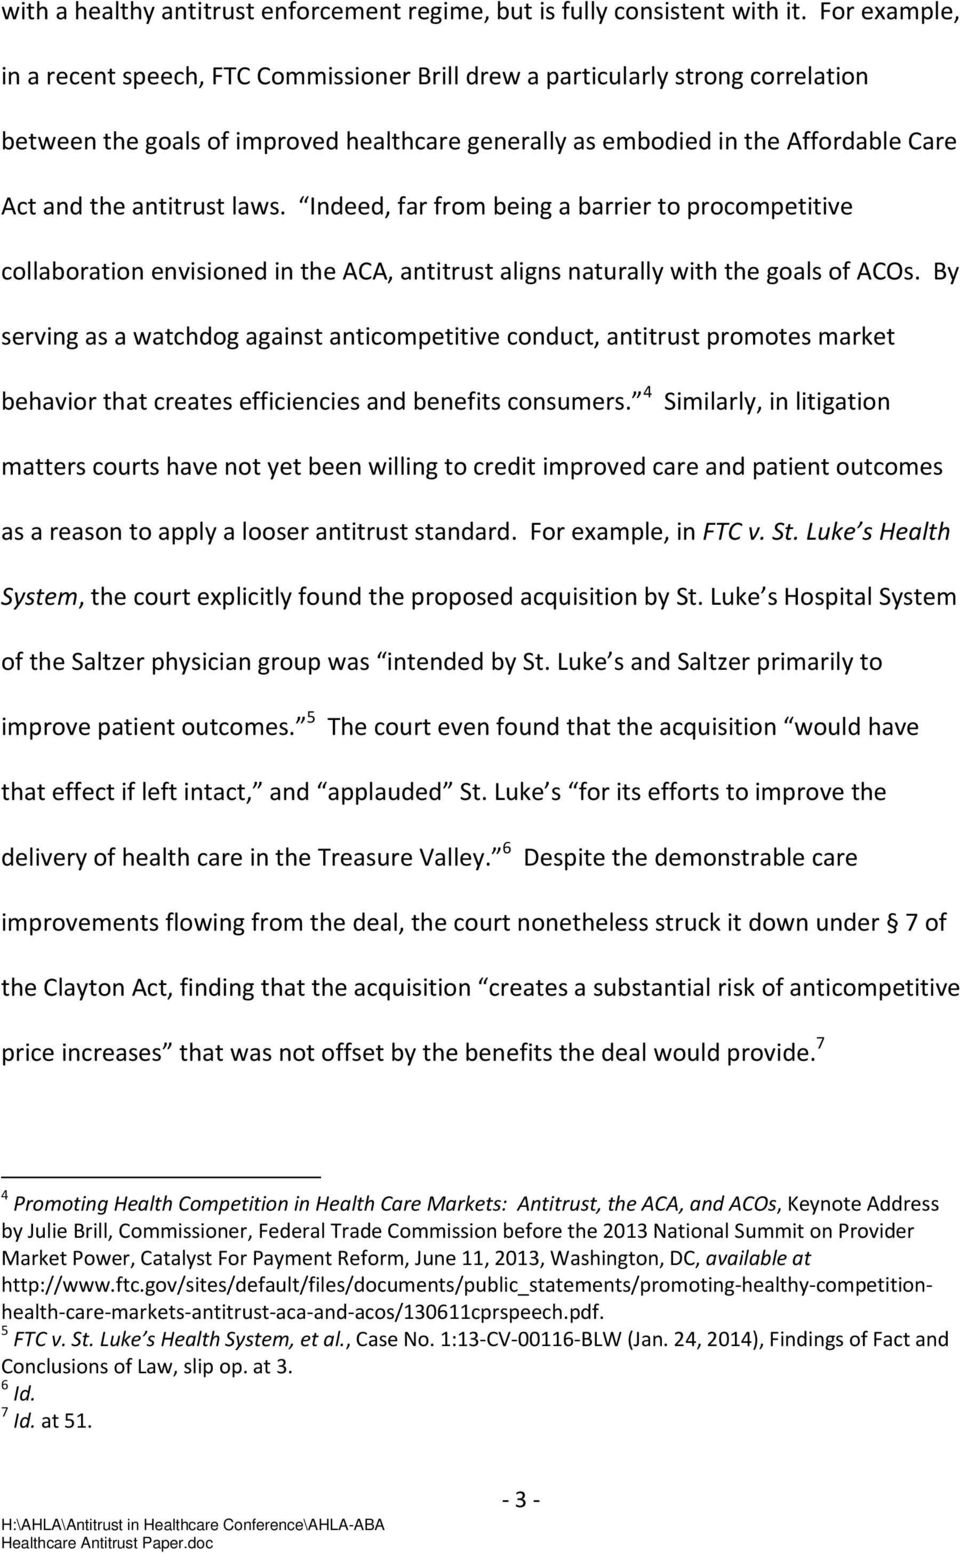 antitrust laws. Indeed, far from being a barrier to procompetitive collaboration envisioned in the ACA, antitrust aligns naturally with the goals of ACOs.